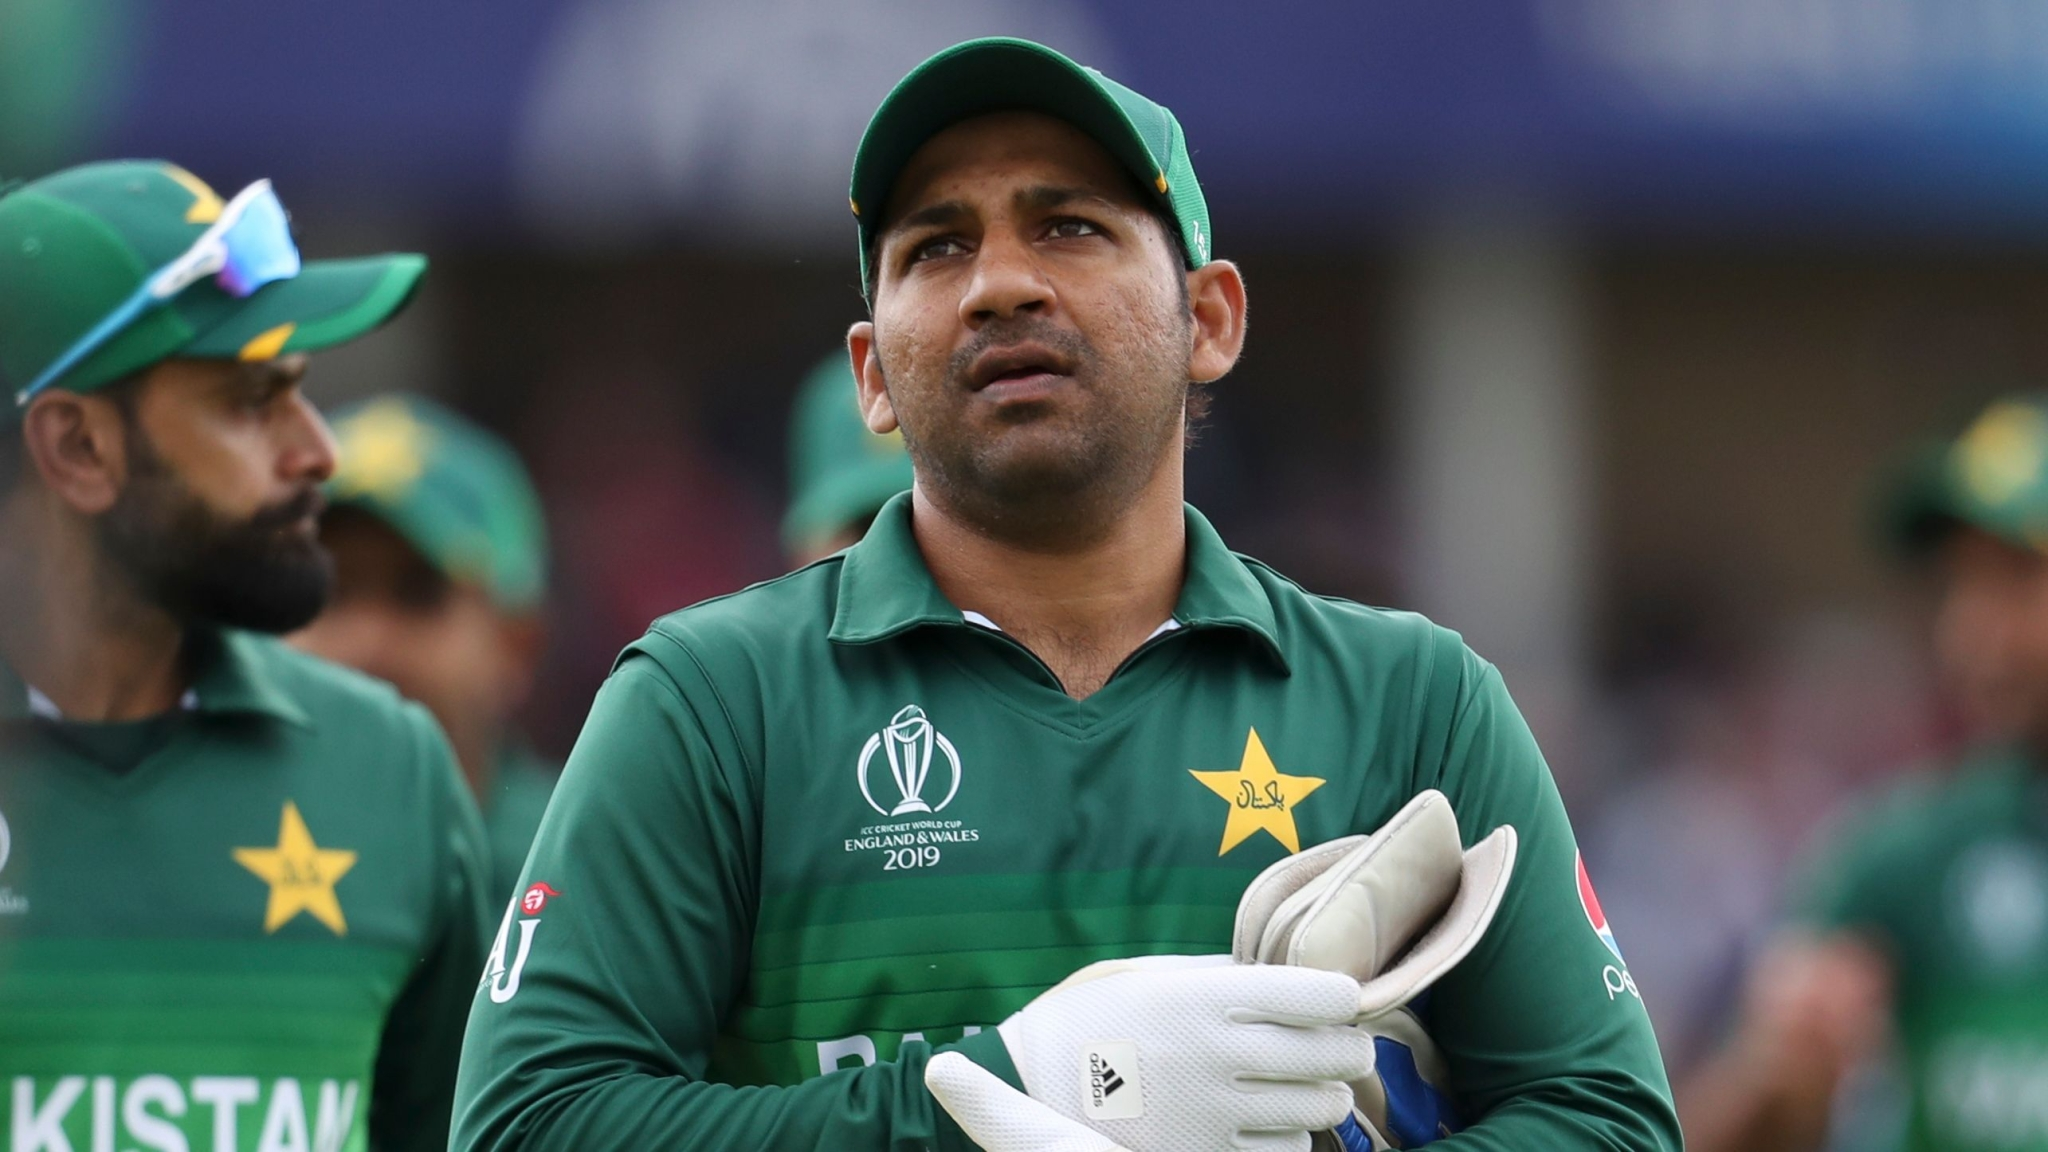 Pak vs SL Live Streaming: Where to Watch World Cup 2019 Online